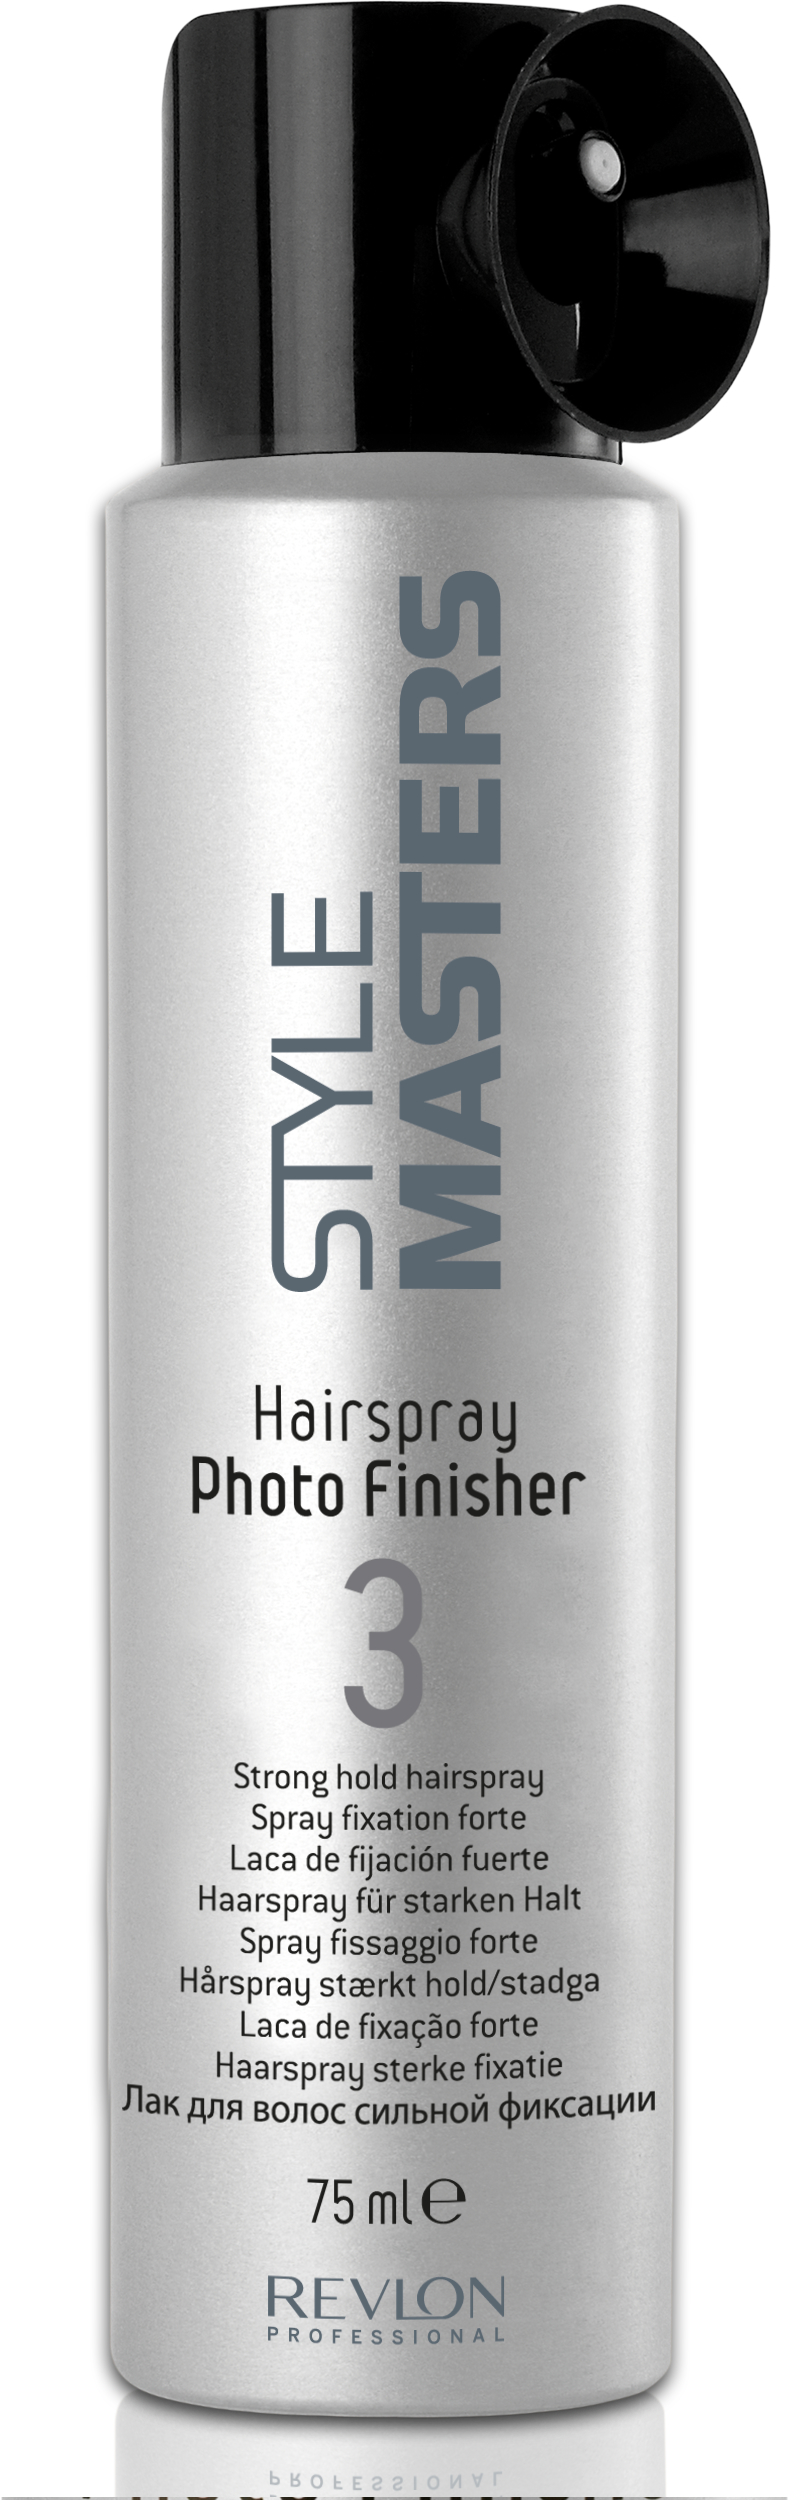 REVLON Professional Лак для волос / PHOTO FINISHER Hairspray 75мл лак schwarzkopf professional flexible hold pure hairspray